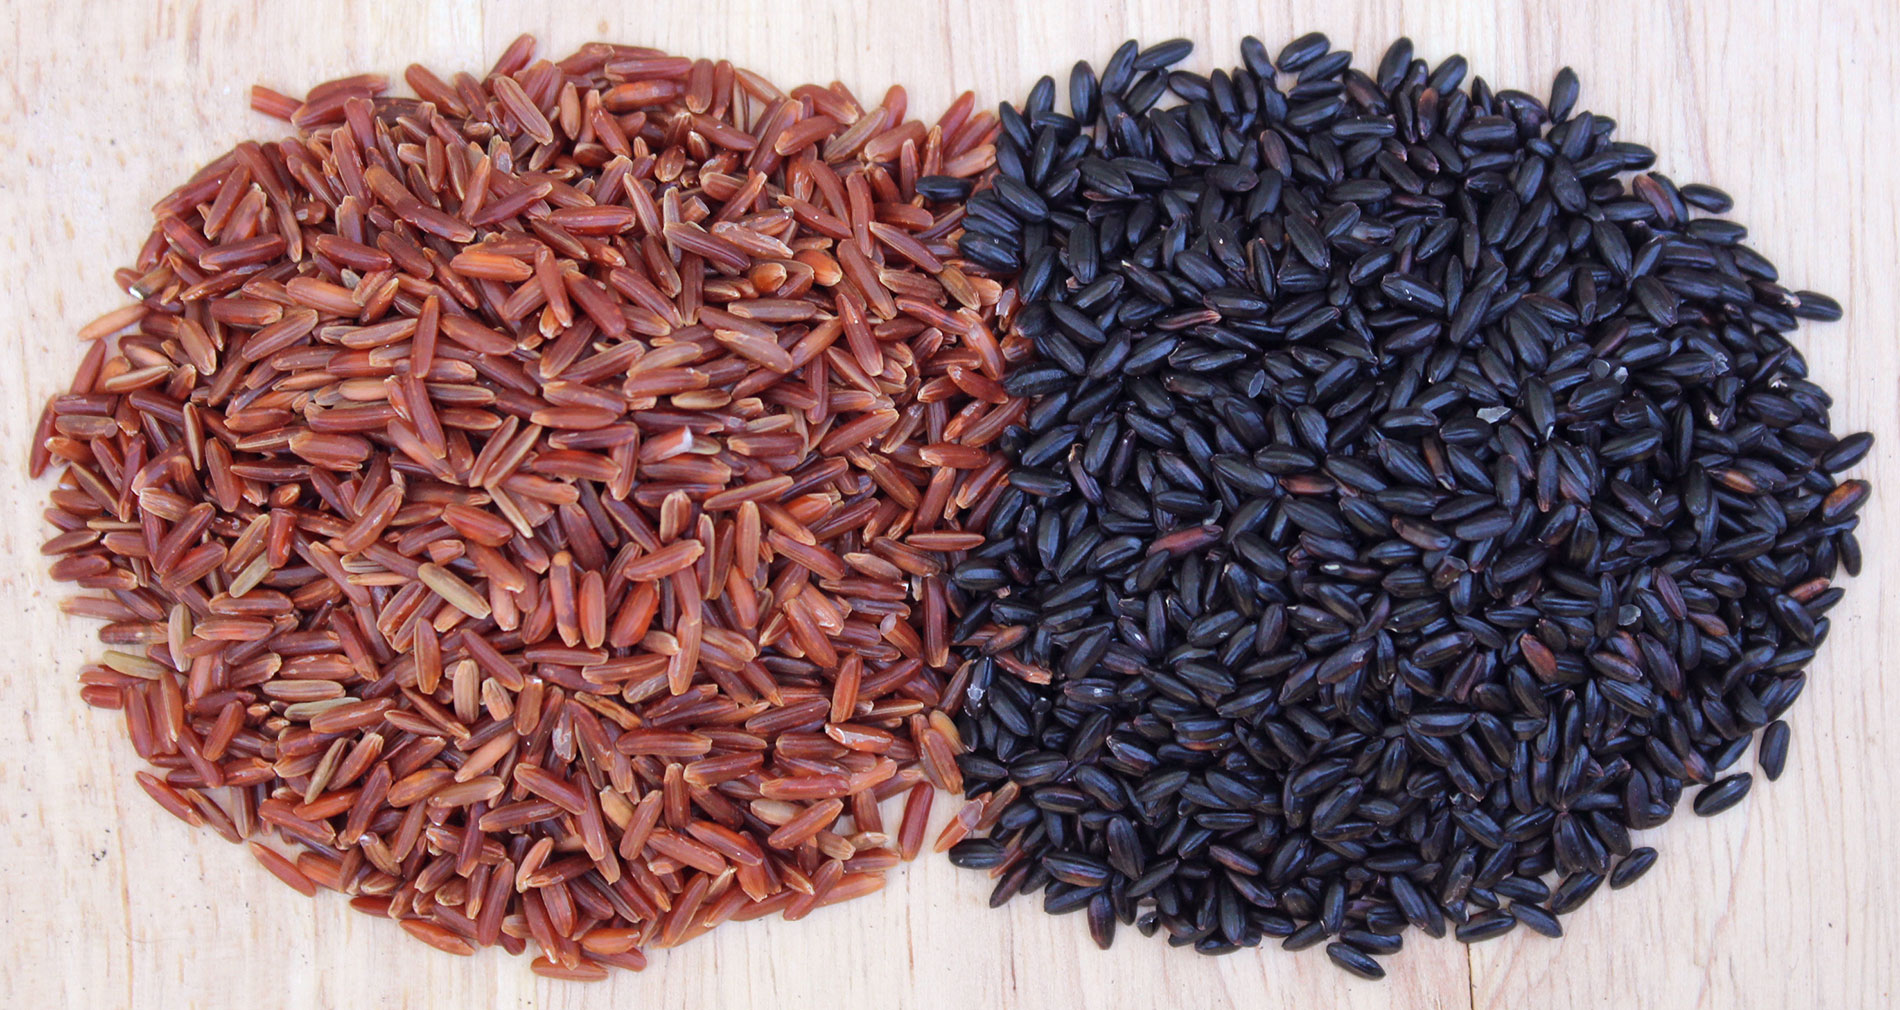 What Black Rice Looks Like